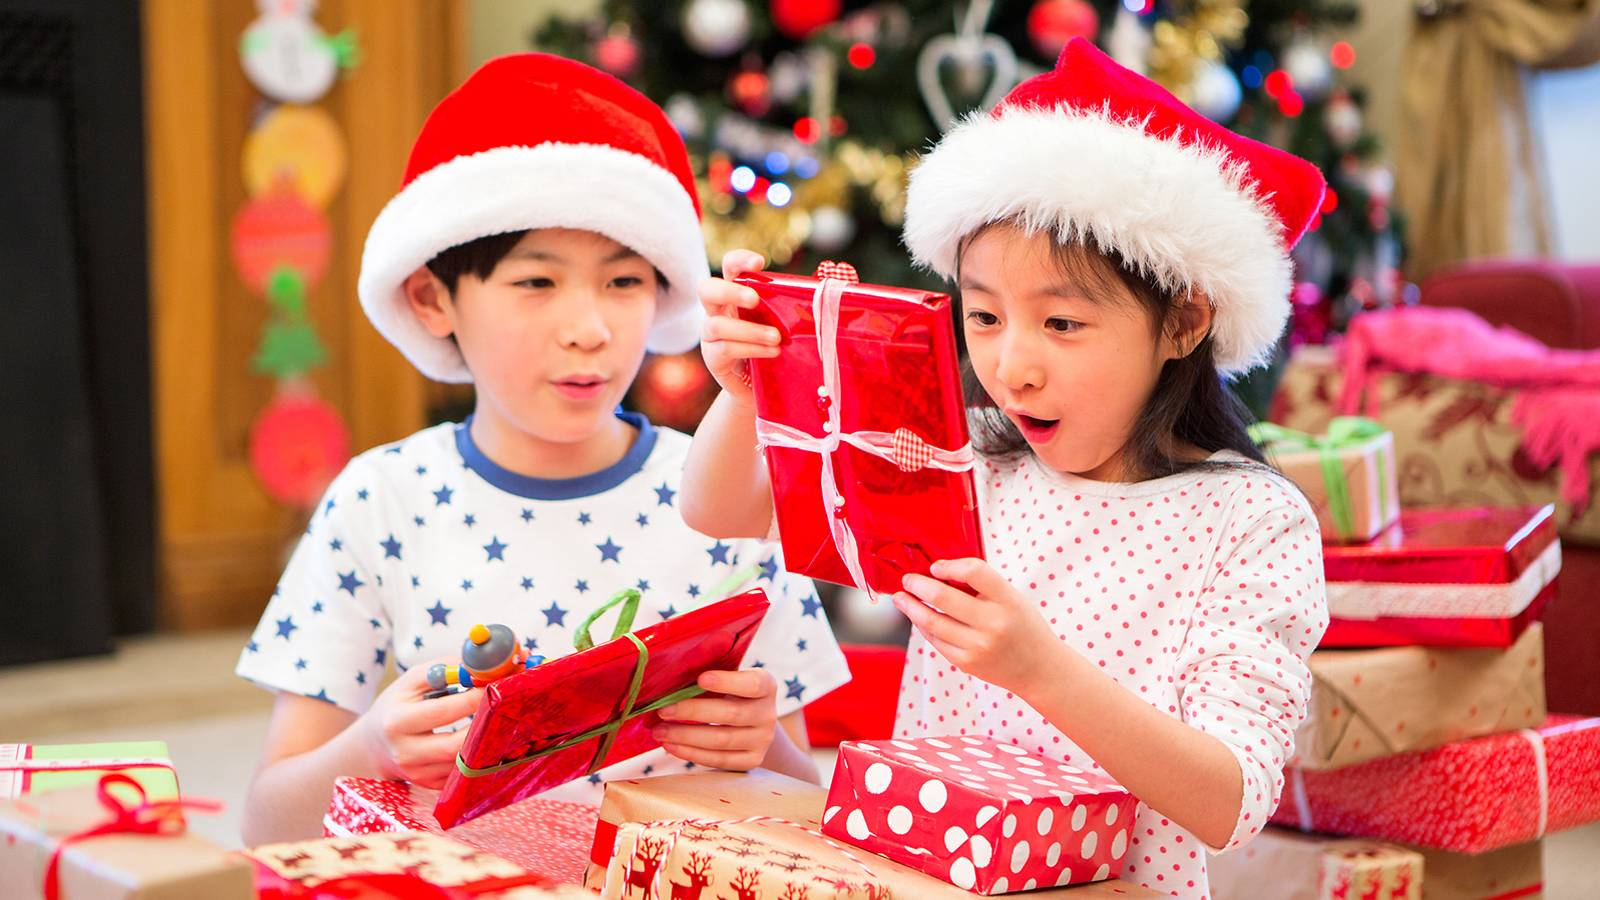 Tots-7-easy-tricks-to-survive-Christmas-parties-with-junior-MAIN